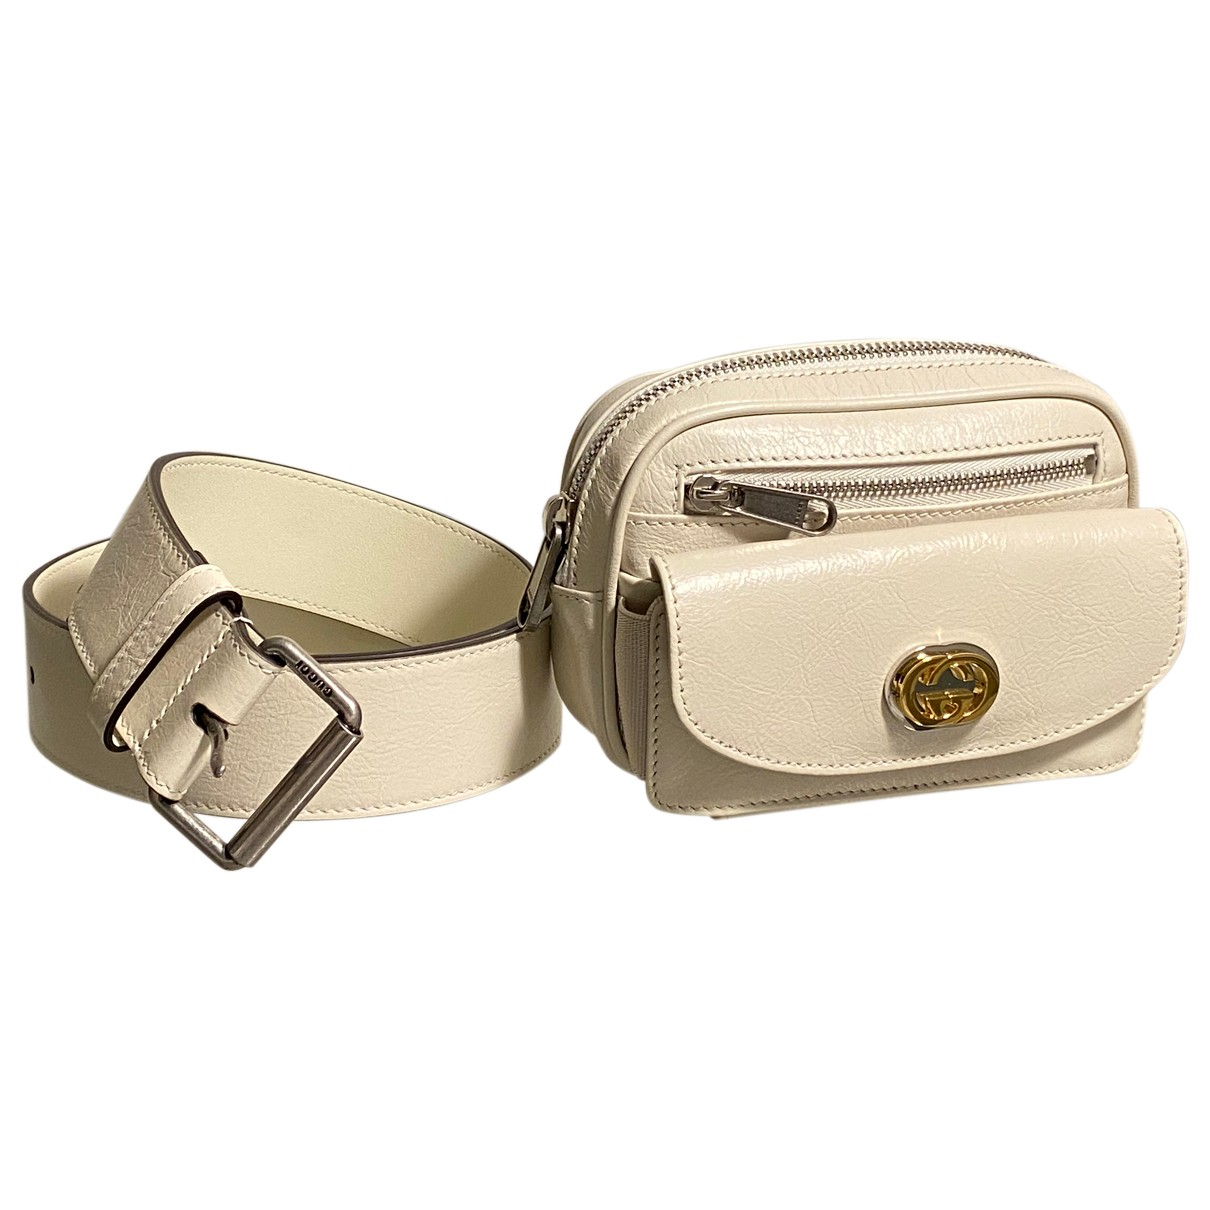 Gucci N White Leather Small bag, wallet & cases for Men N